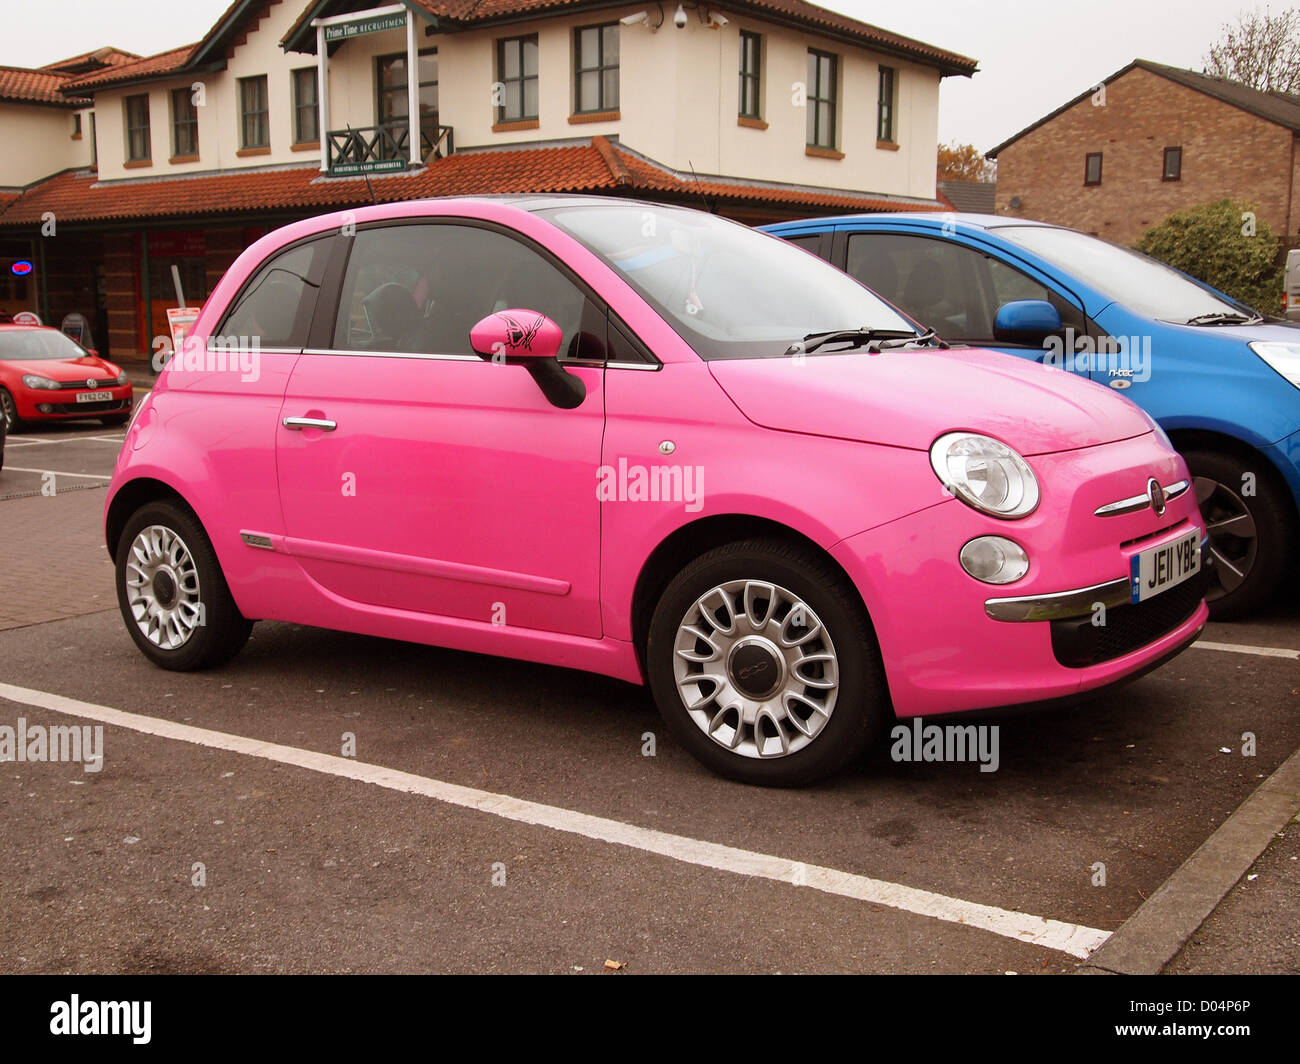 pink girls fiat 500 the current trendy car for young female drivers stock photo 51736350 alamy. Black Bedroom Furniture Sets. Home Design Ideas